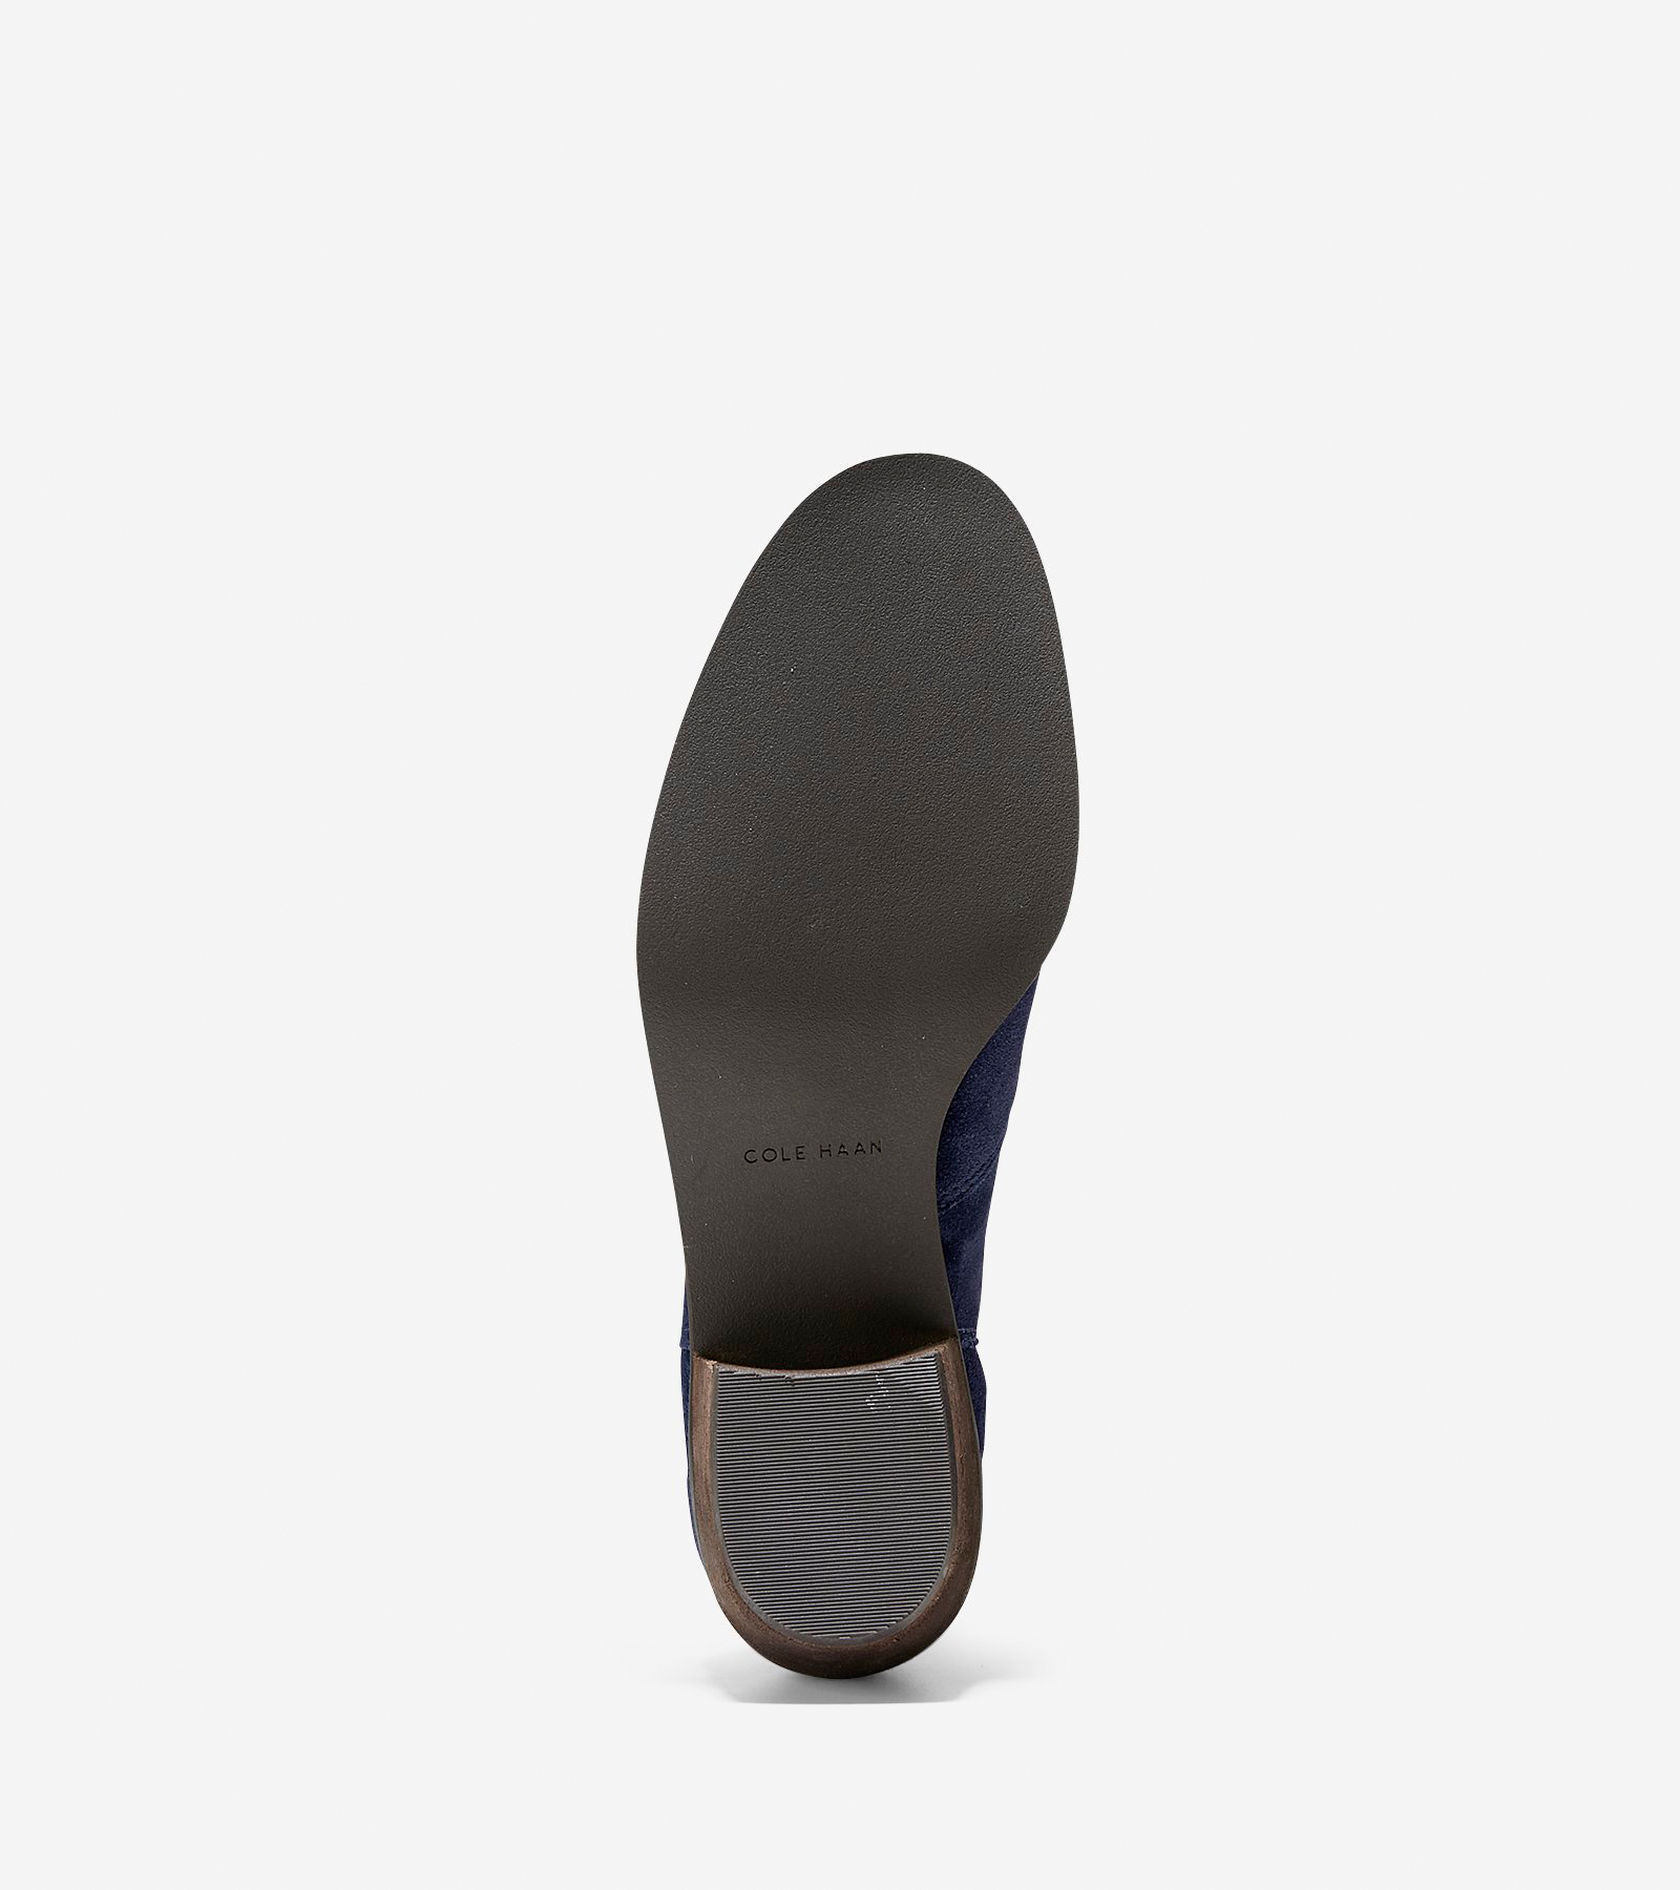 SALE【Cole Haan】Alayna Bootie (45mm)